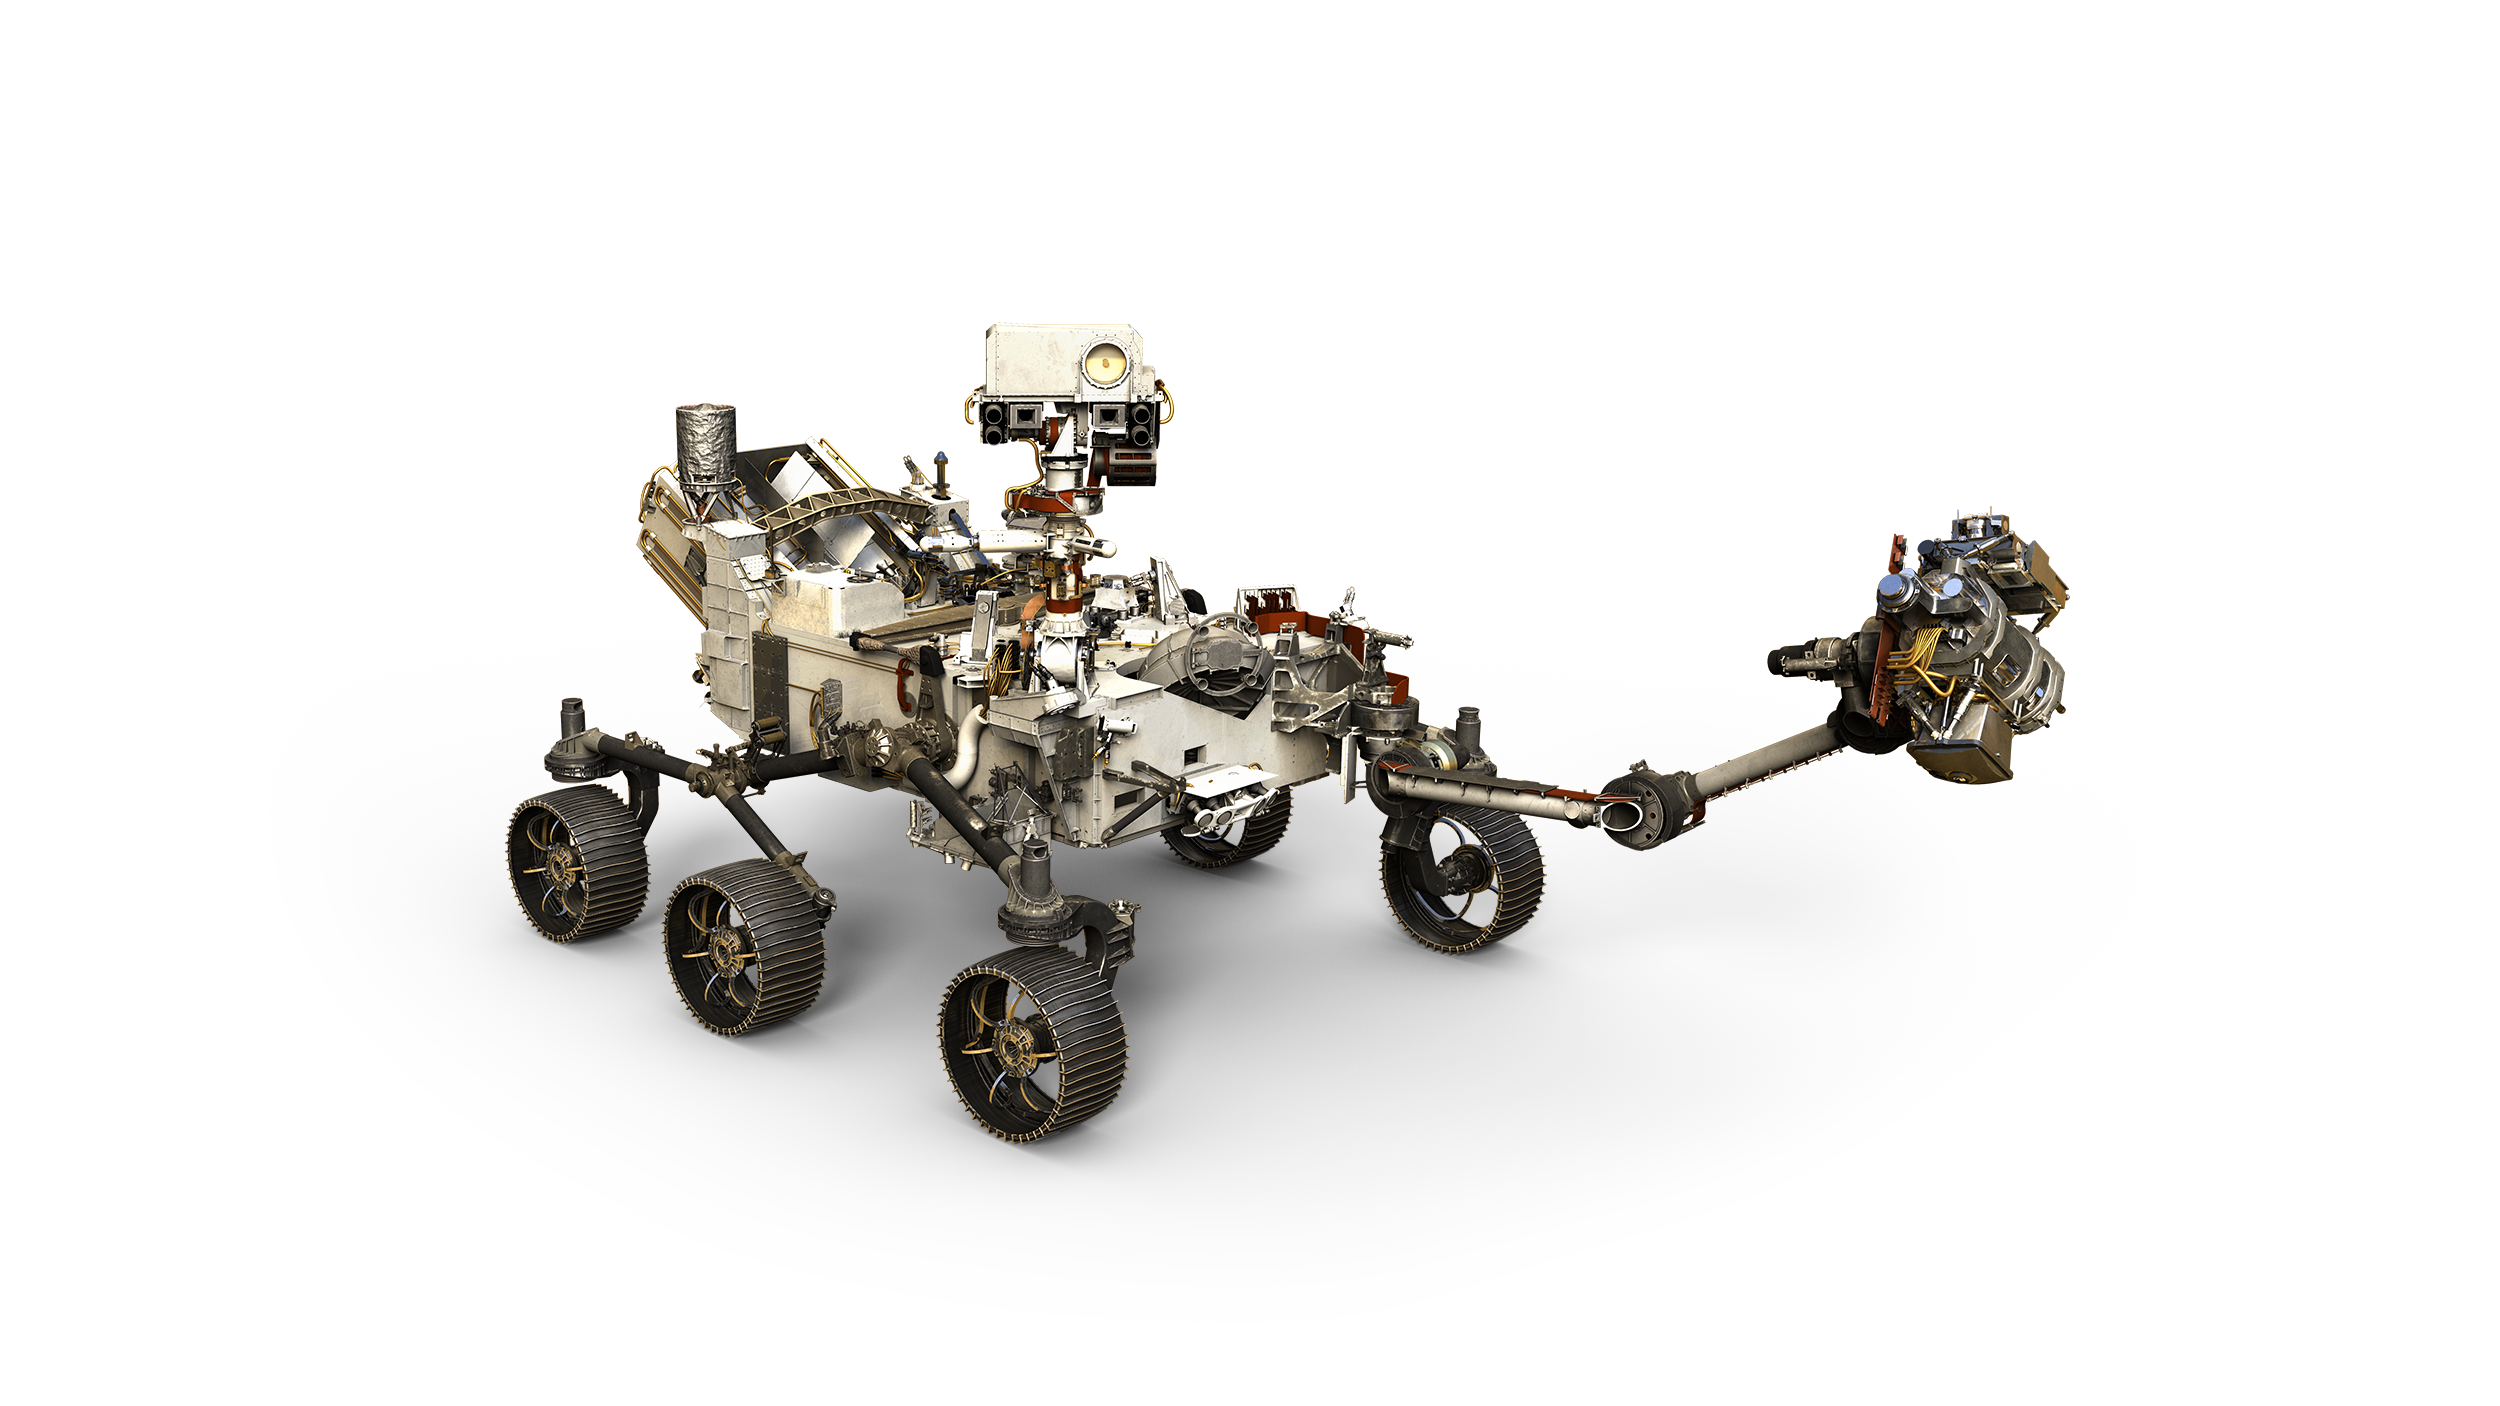 mars rover mission nasa - photo #18